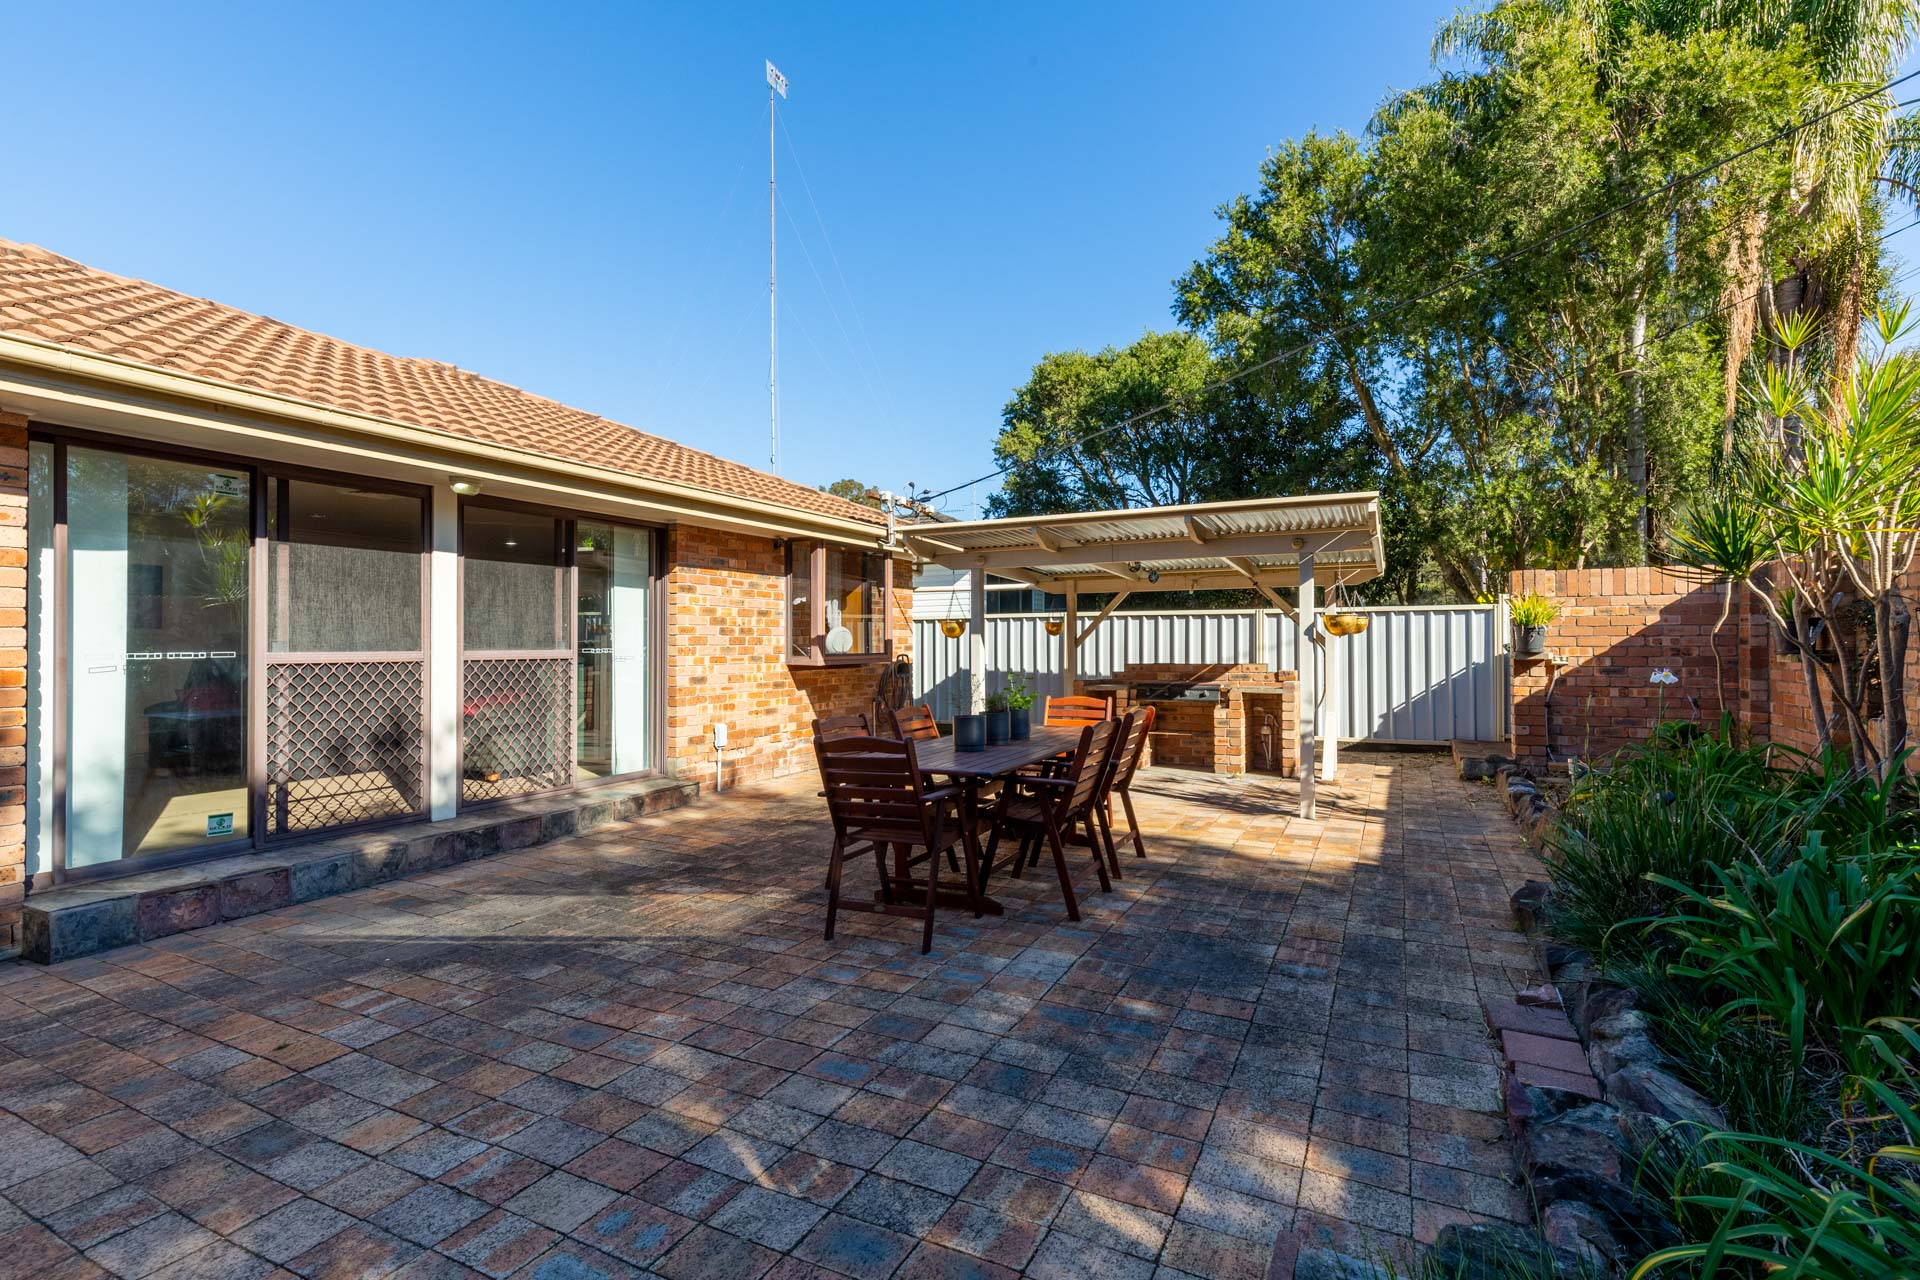 70 Medcalf St   Warners Bay (4 of 18)